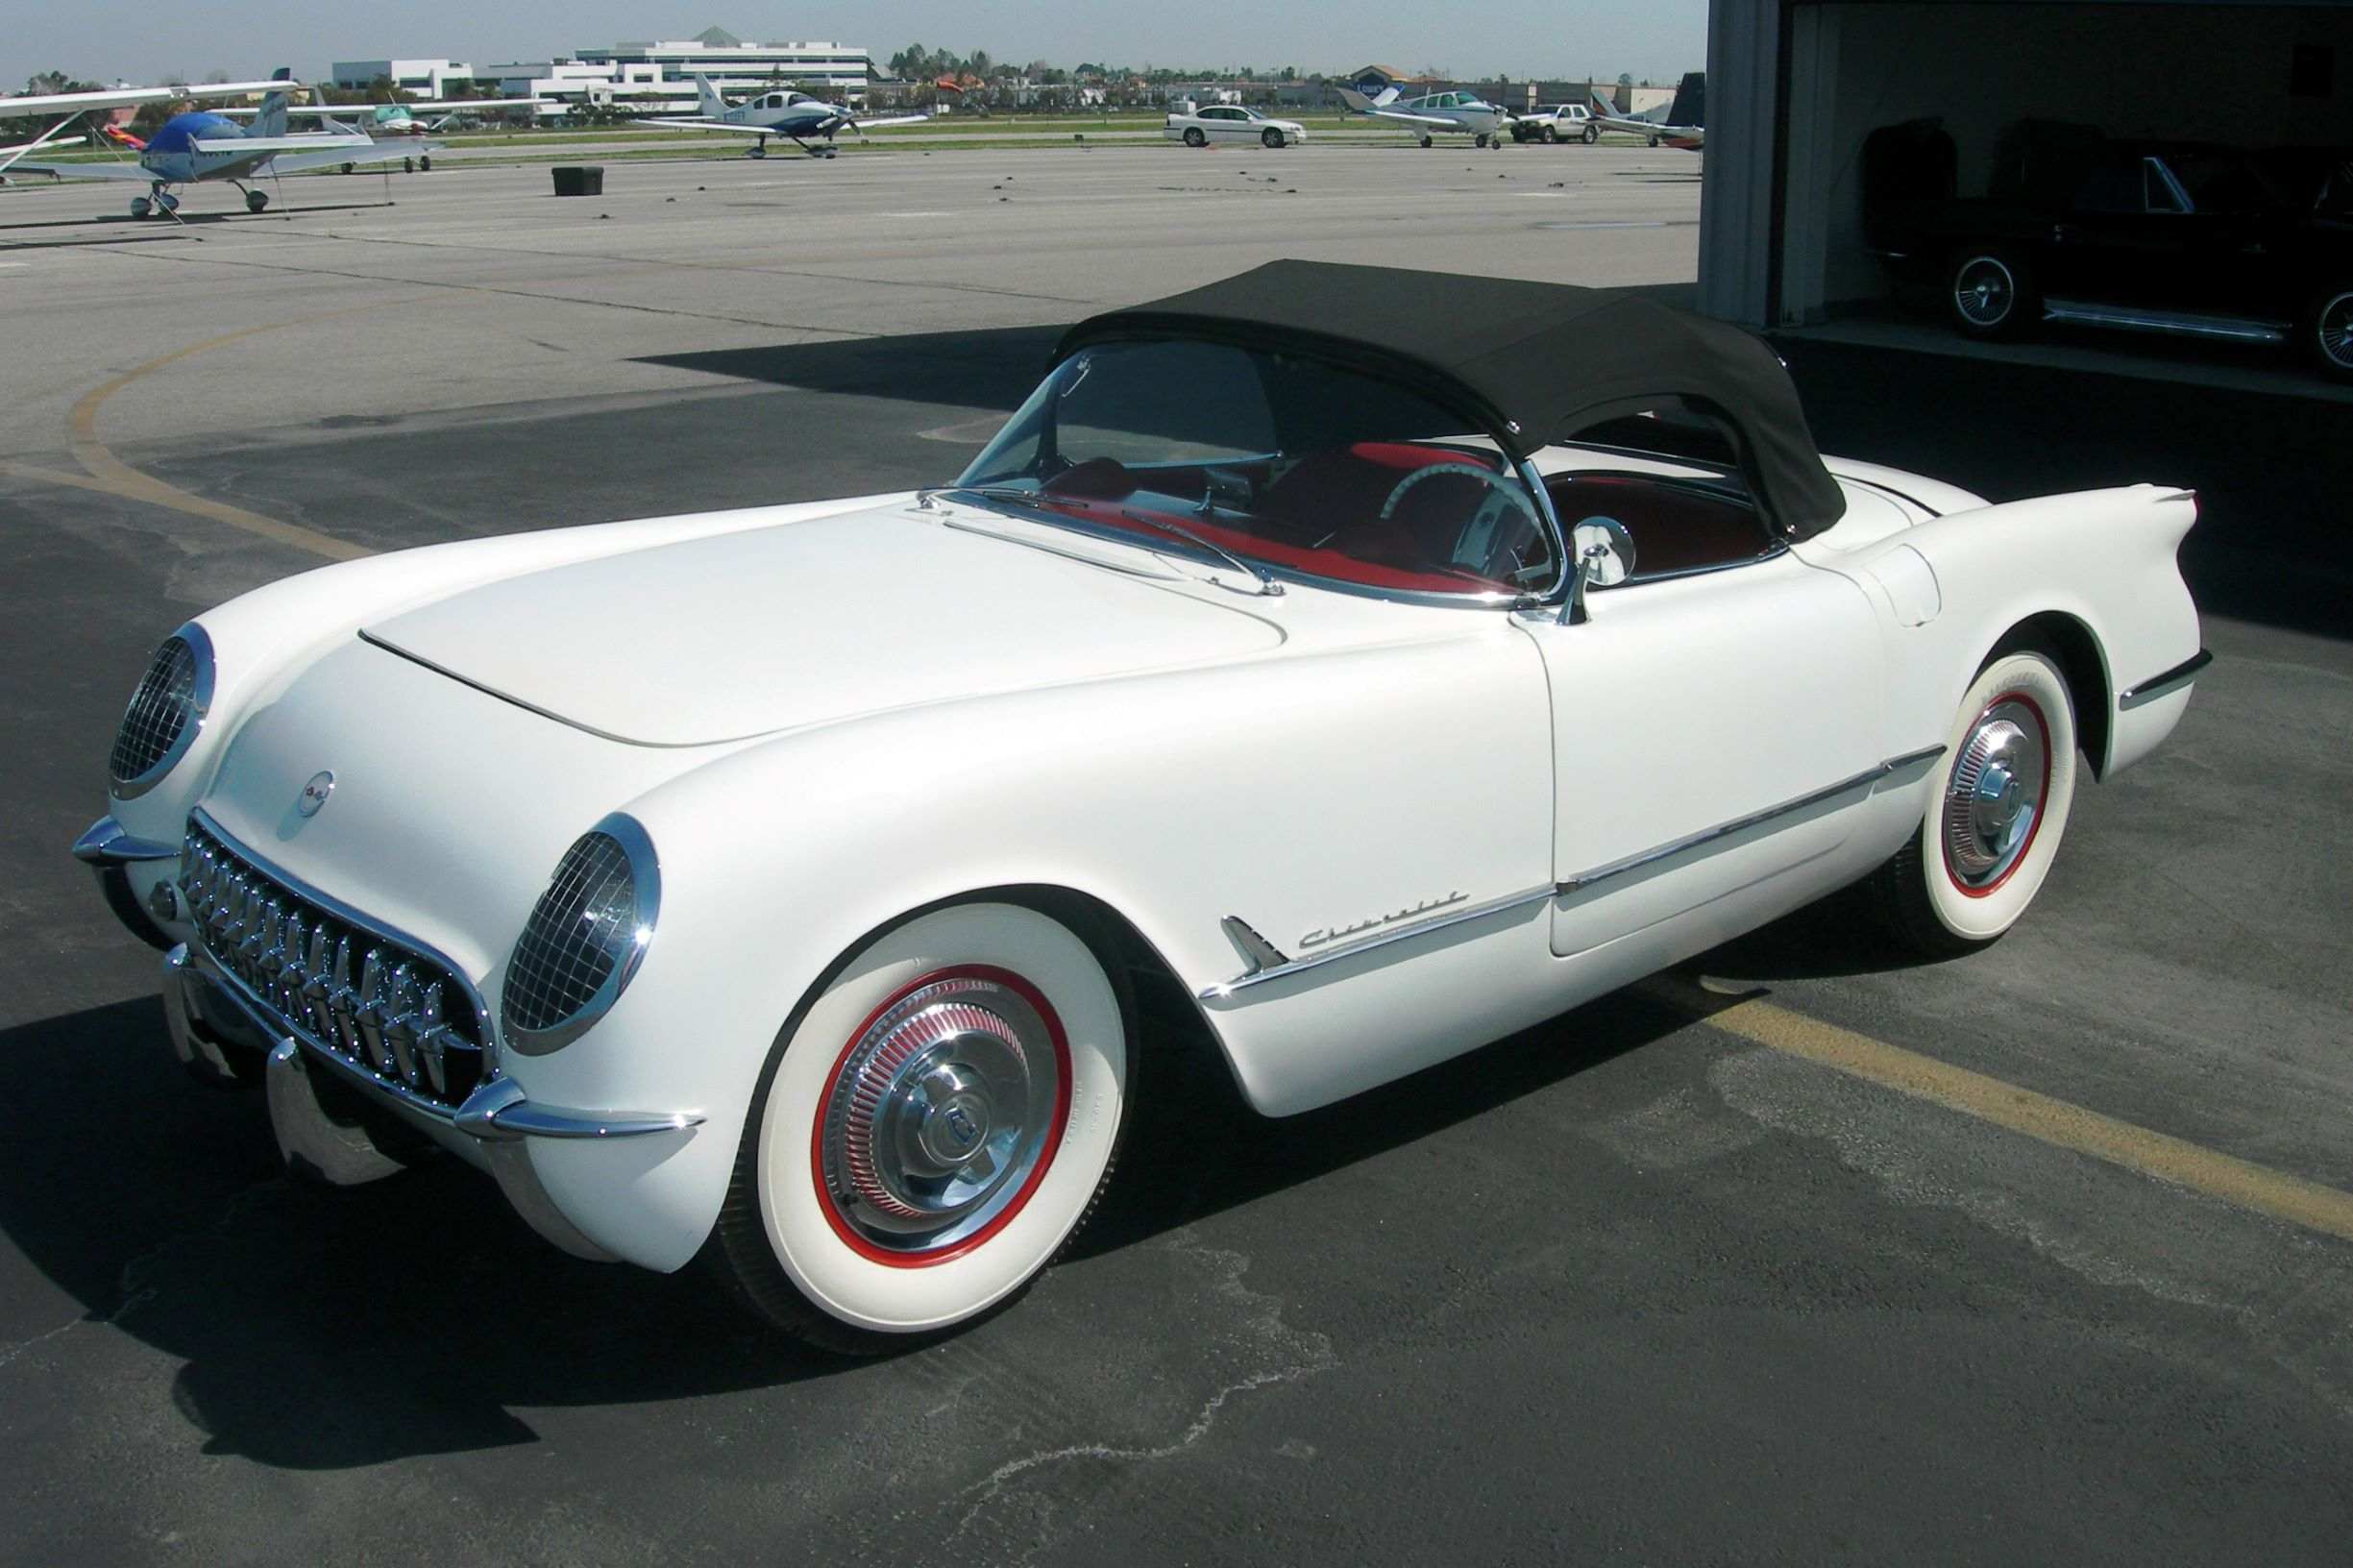 NASCAR's Mark Martin this 1953 Chevrolet Corvette Convertible - Barrett-Jackson Scottsdale